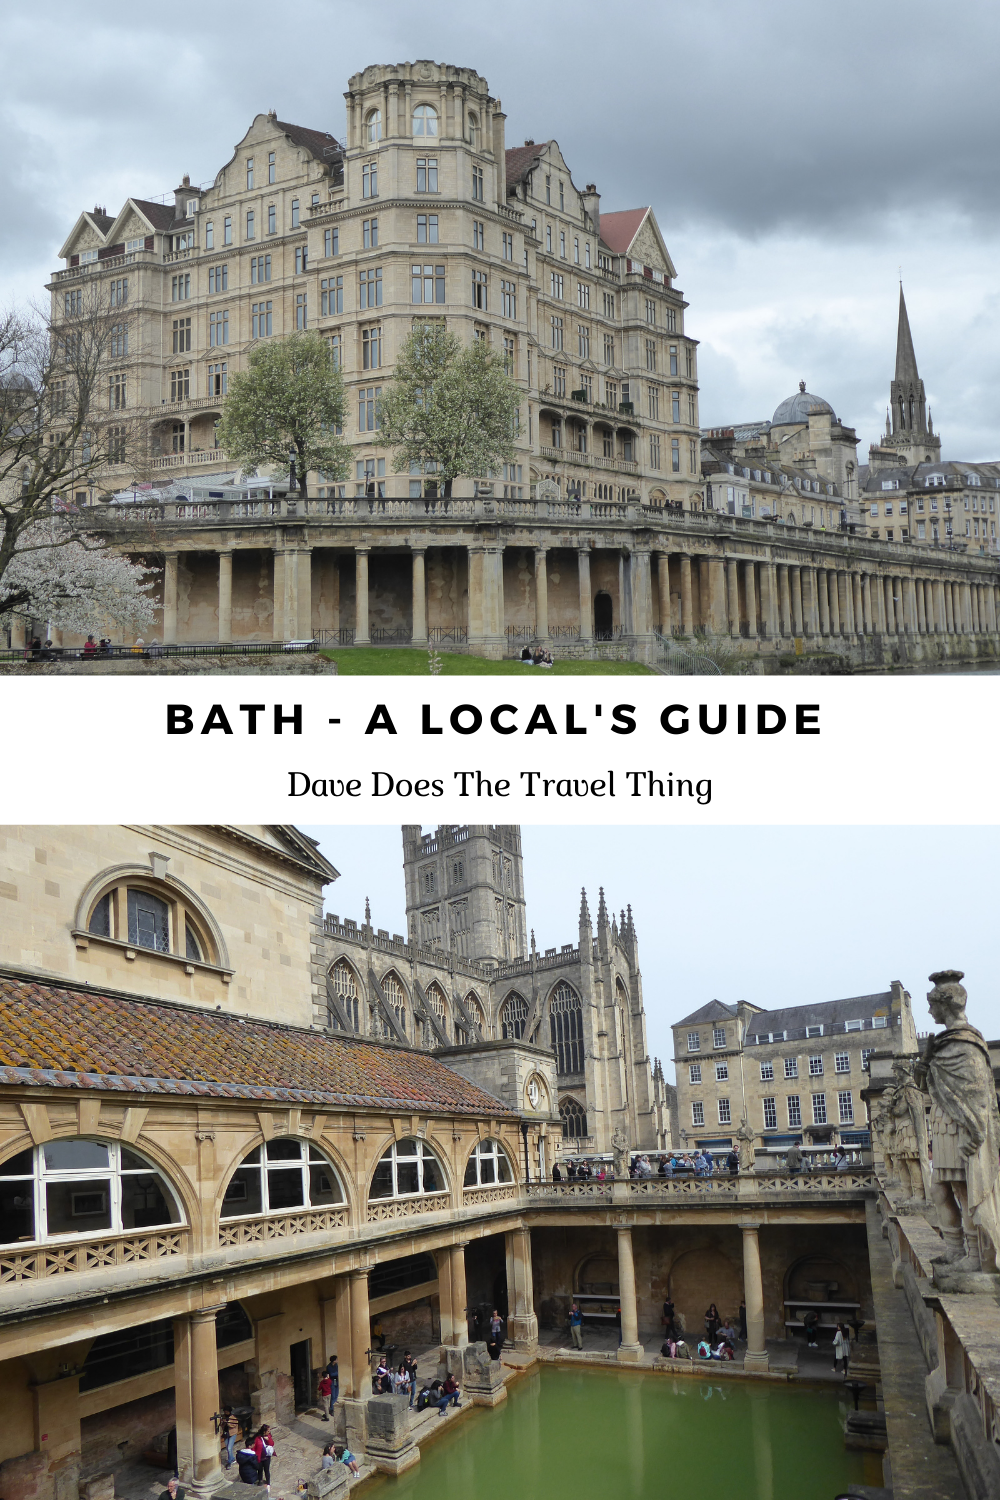 Pinterest Pin saying - 'BATH - A LOCAL's GUIDE' and 'Dave Does The Travel Thing'. Showing 2 images of the English city of Bath, one of the Empire Hotel building and 1 of the Roman Baths with the Bath Abbey in the background.